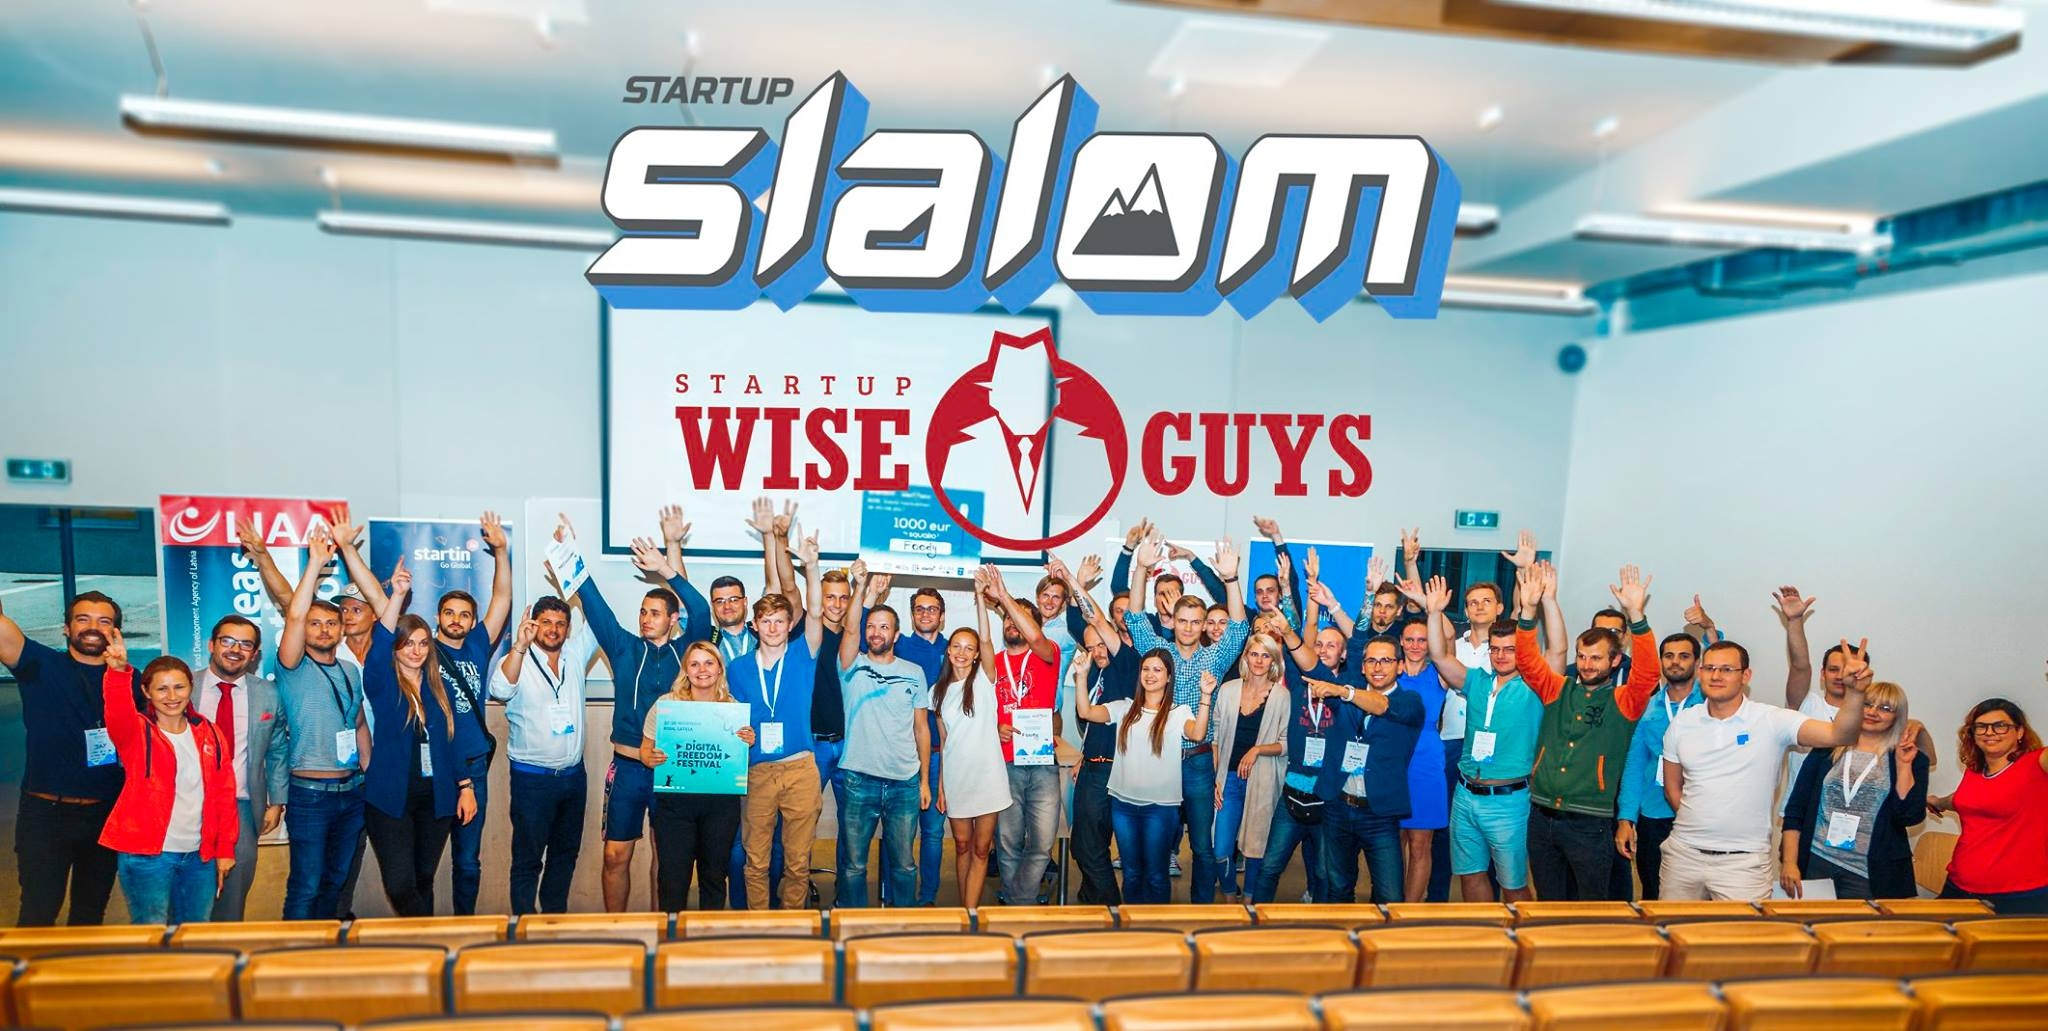 Participiants at Startup Slalom + Startup Wise Guys. Riga, Latvia. August 2017.